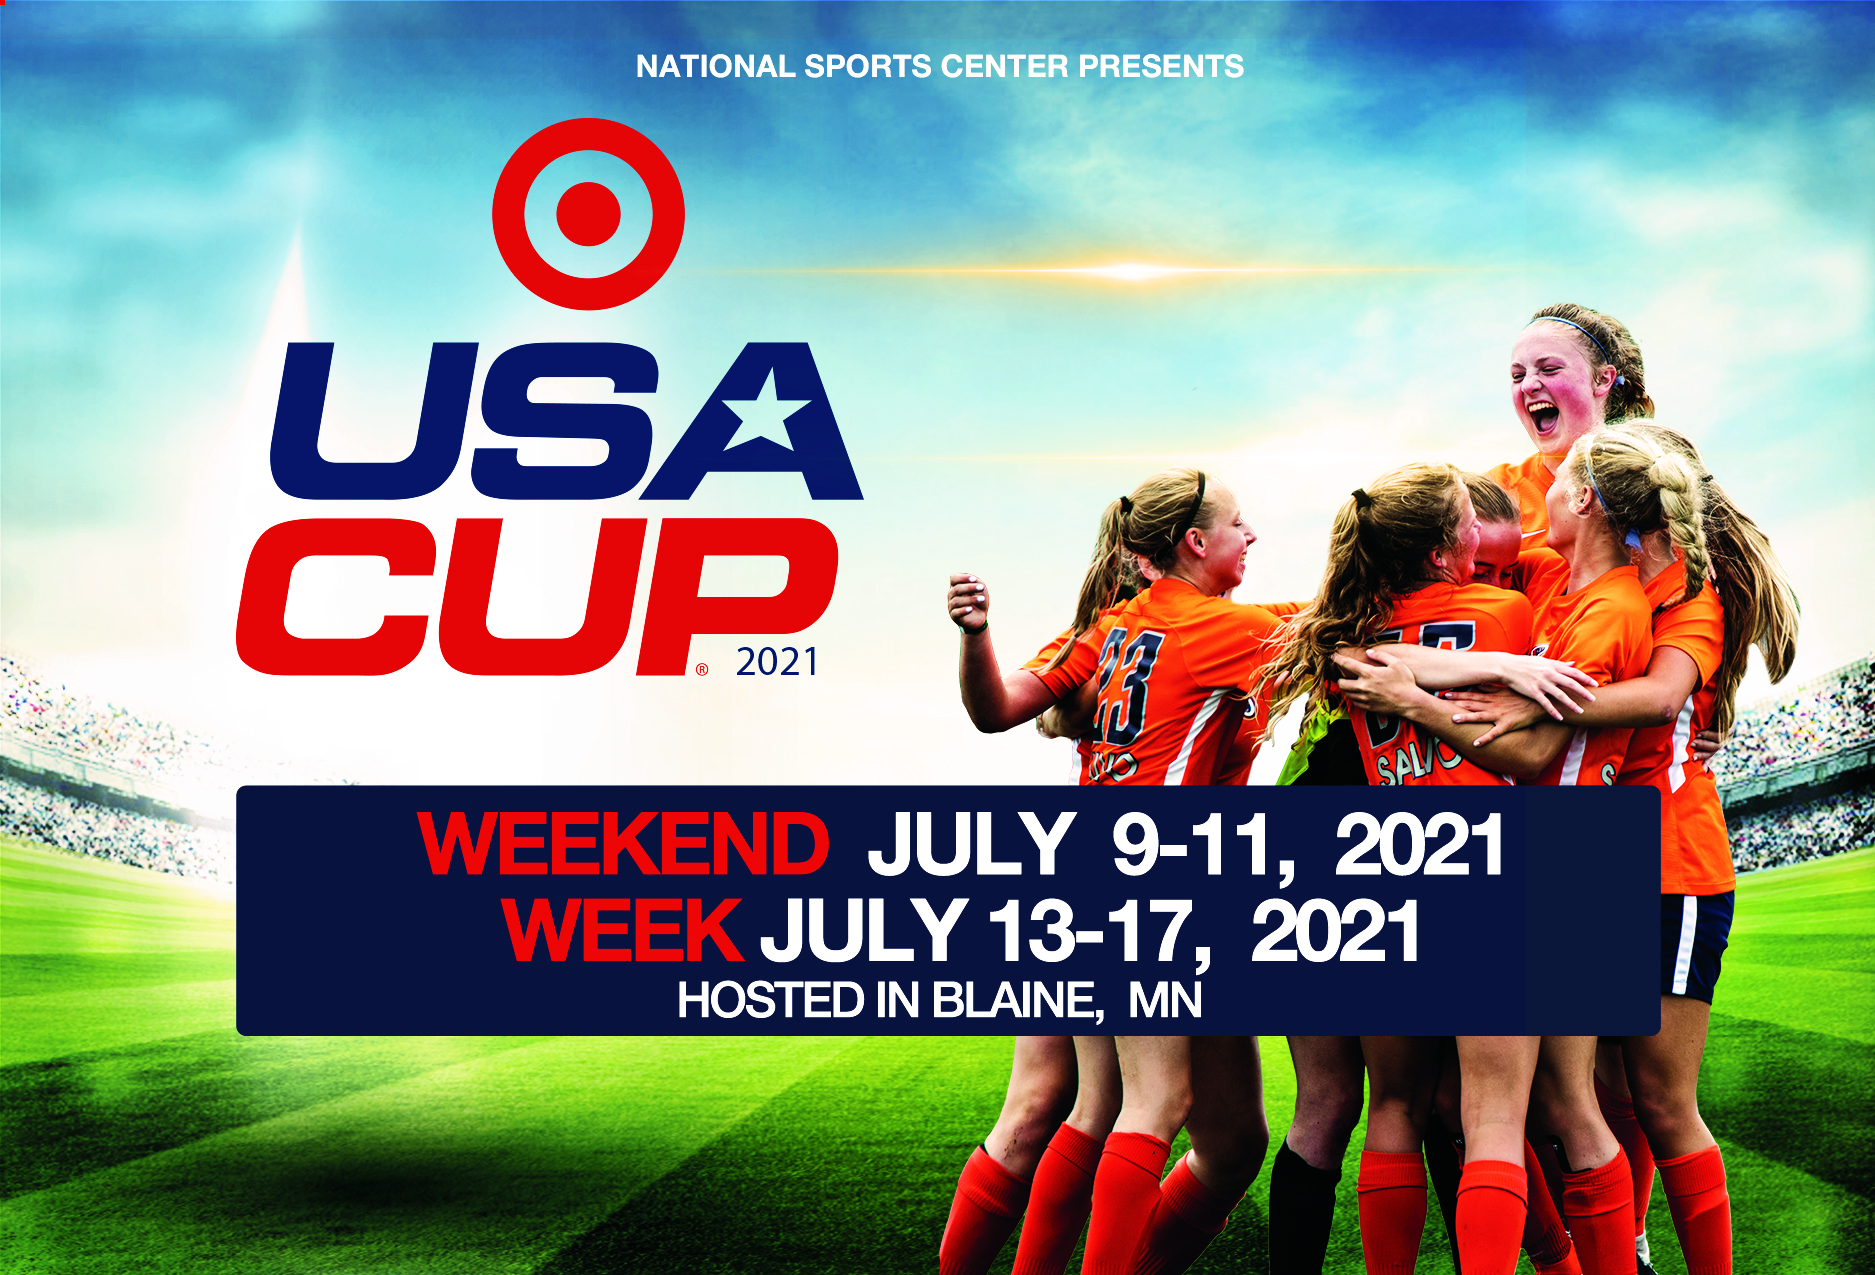 USA CUP EMAIL GRAPHIC 4.29.2021